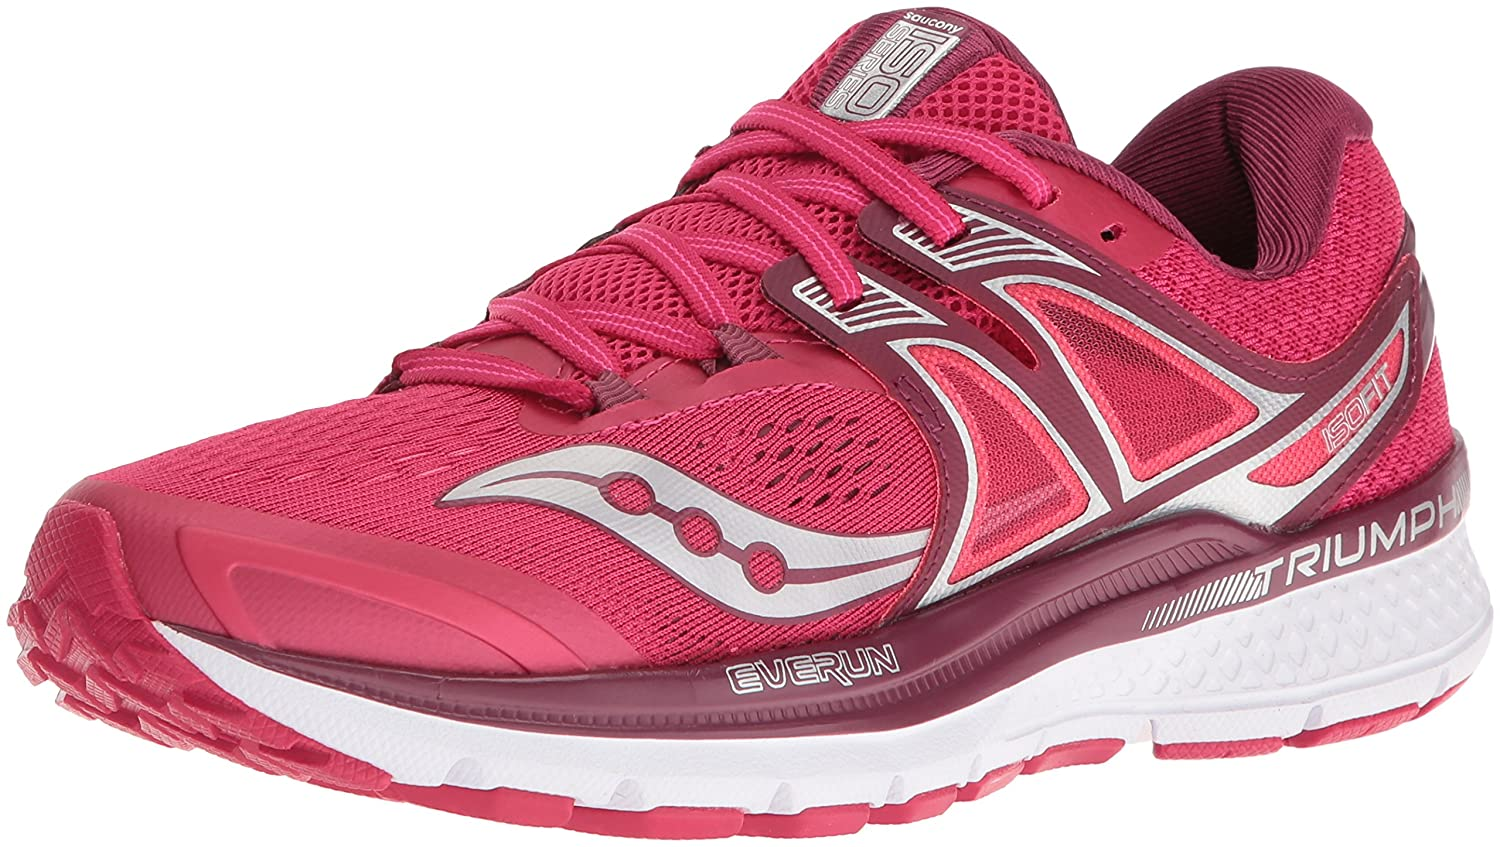 Saucony Women's Triumph Iso 3 Running Sneaker B01GILHUZC 10.5 B(M) US|Pink/Berry/Silver